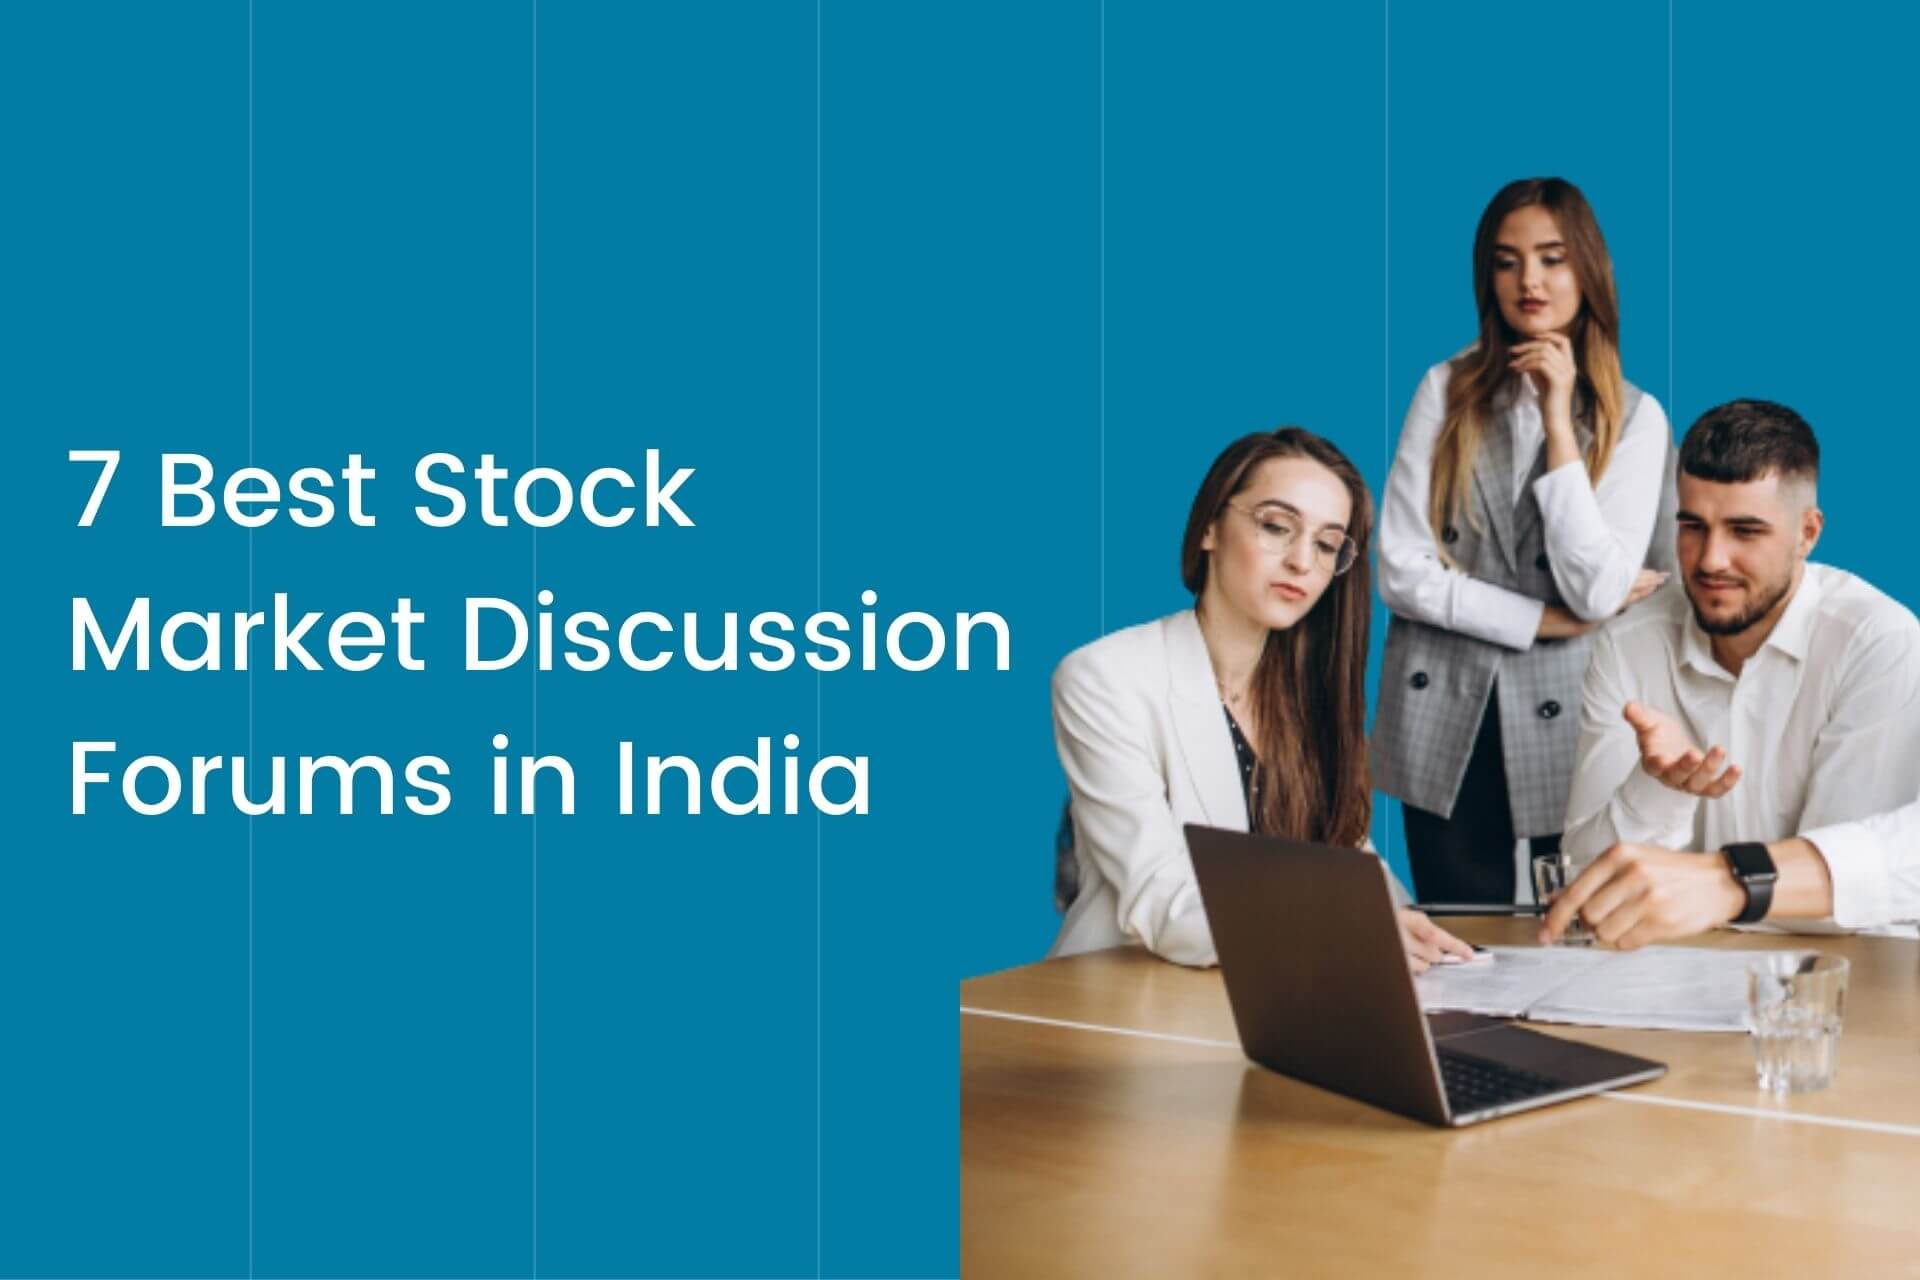 7 Best Stock Market Discussion Forums in India